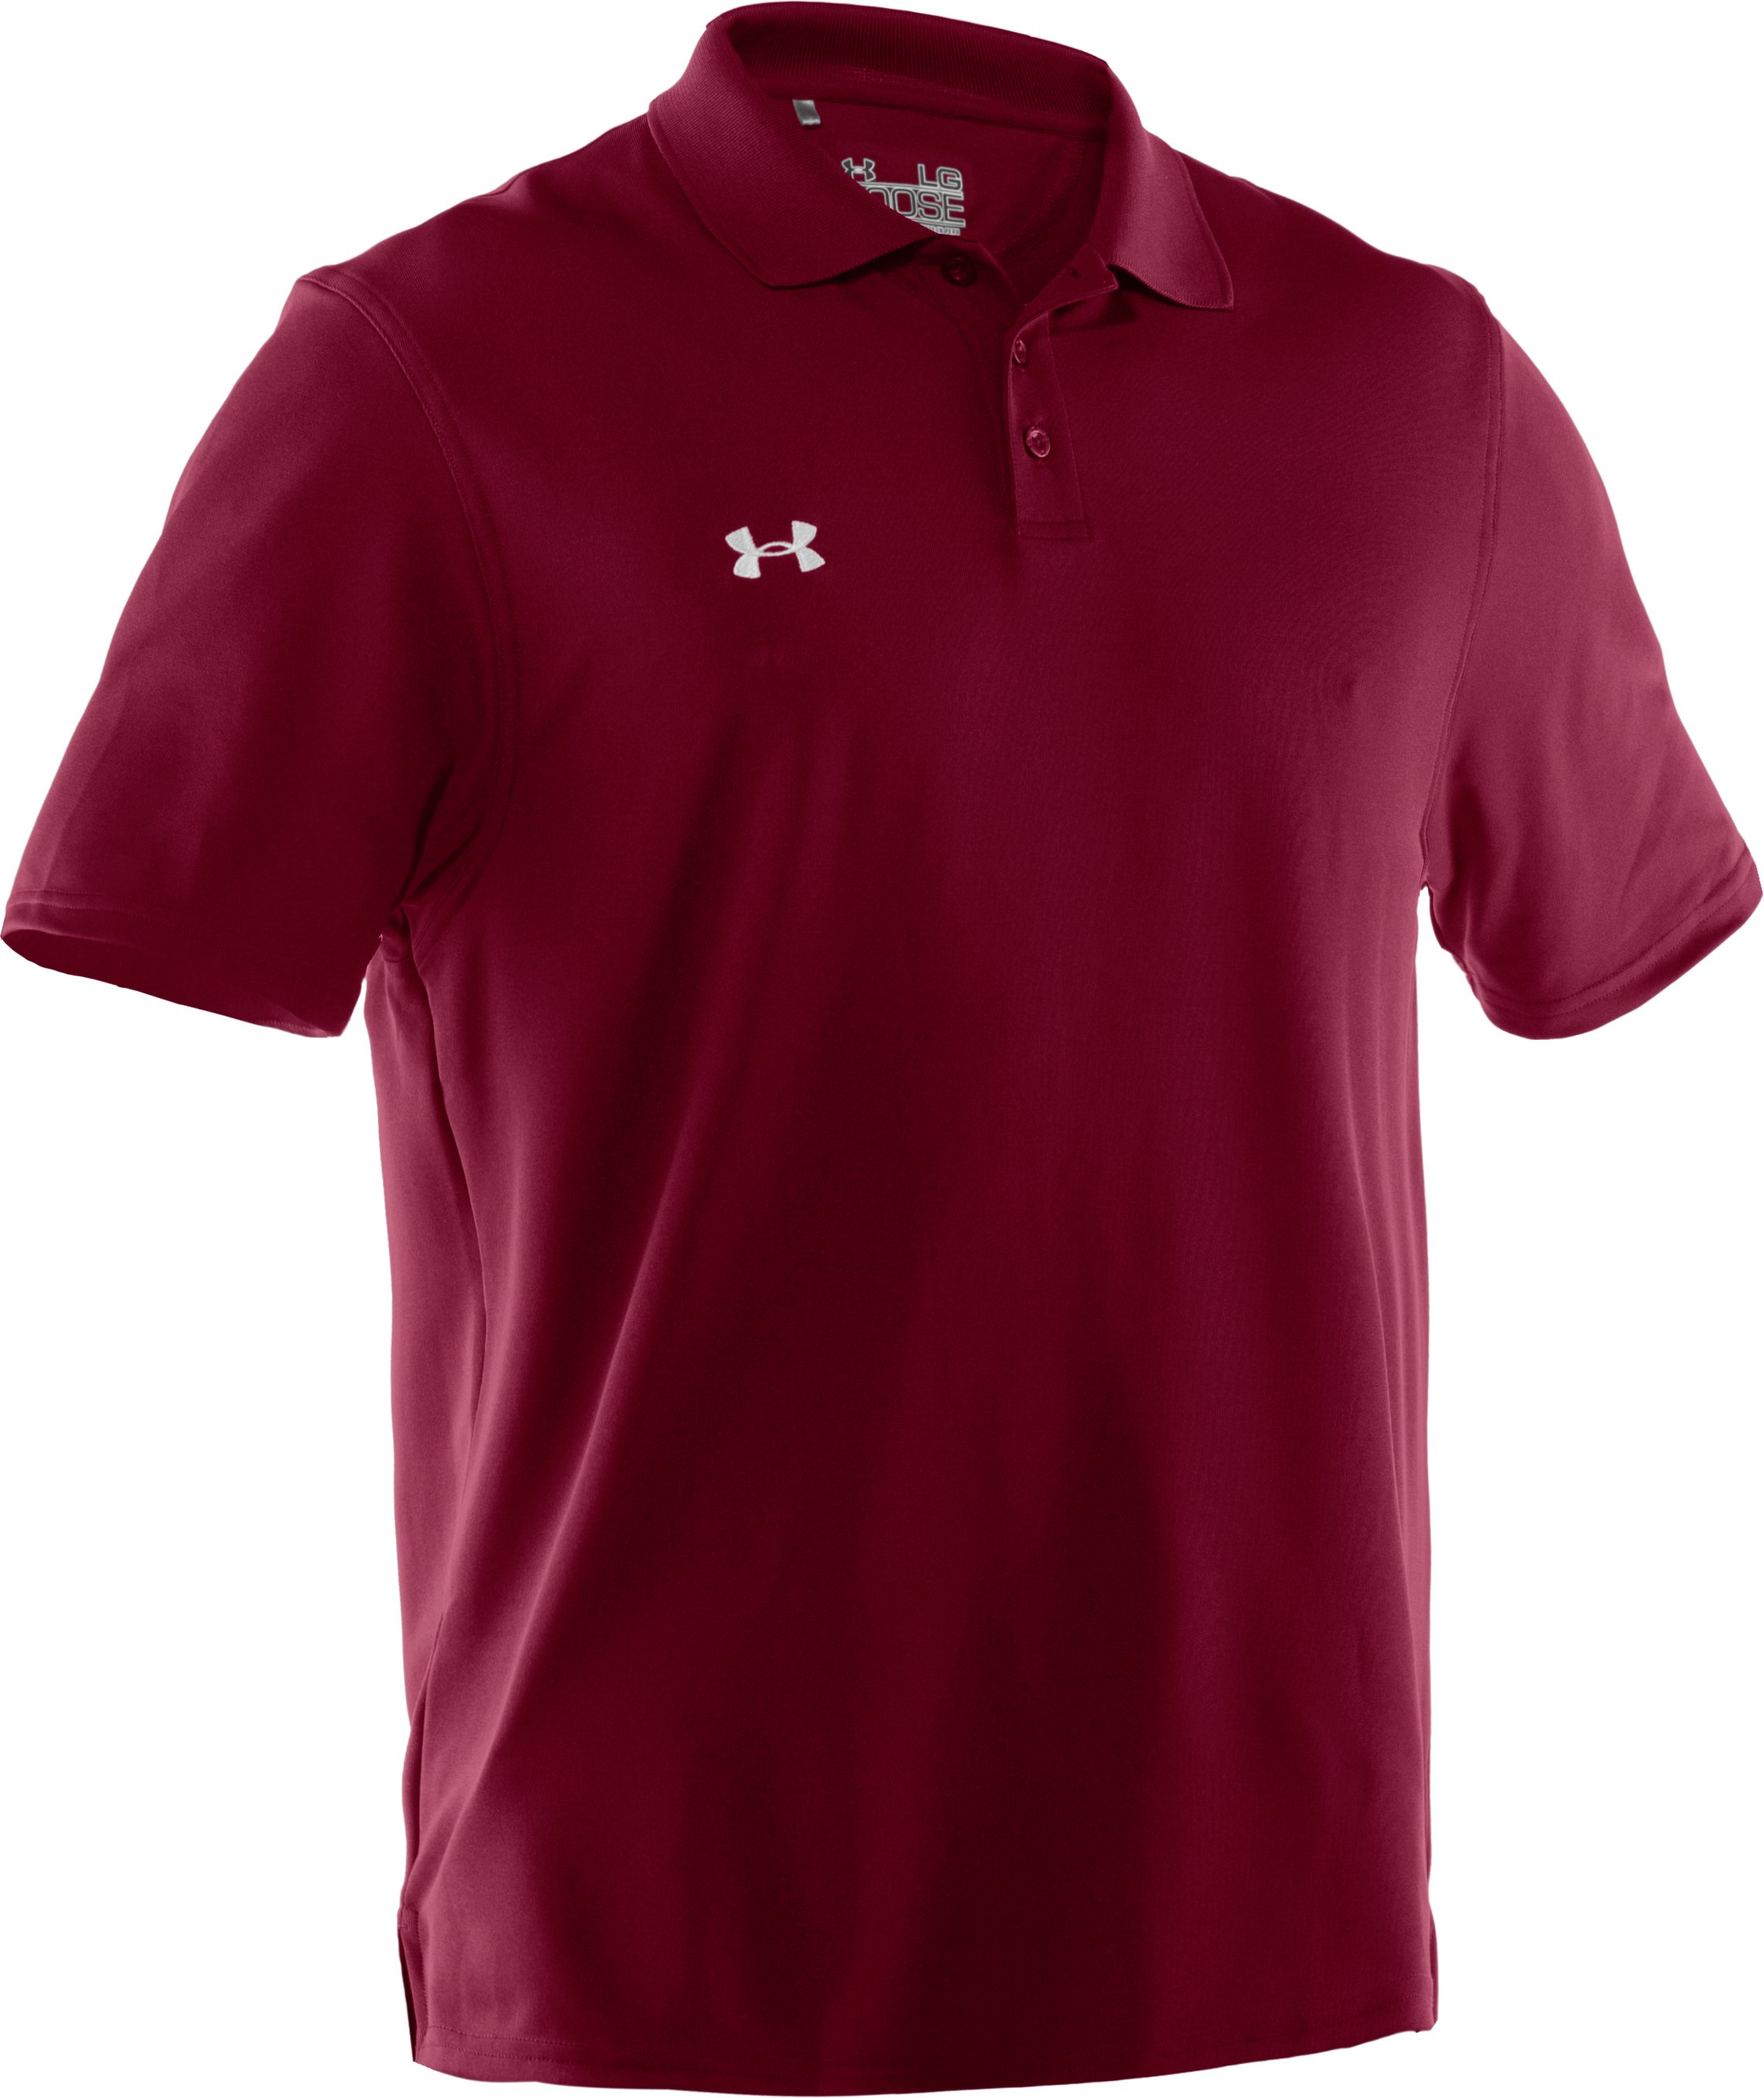 Men's UA Performance Team Polo, Maroon, undefined